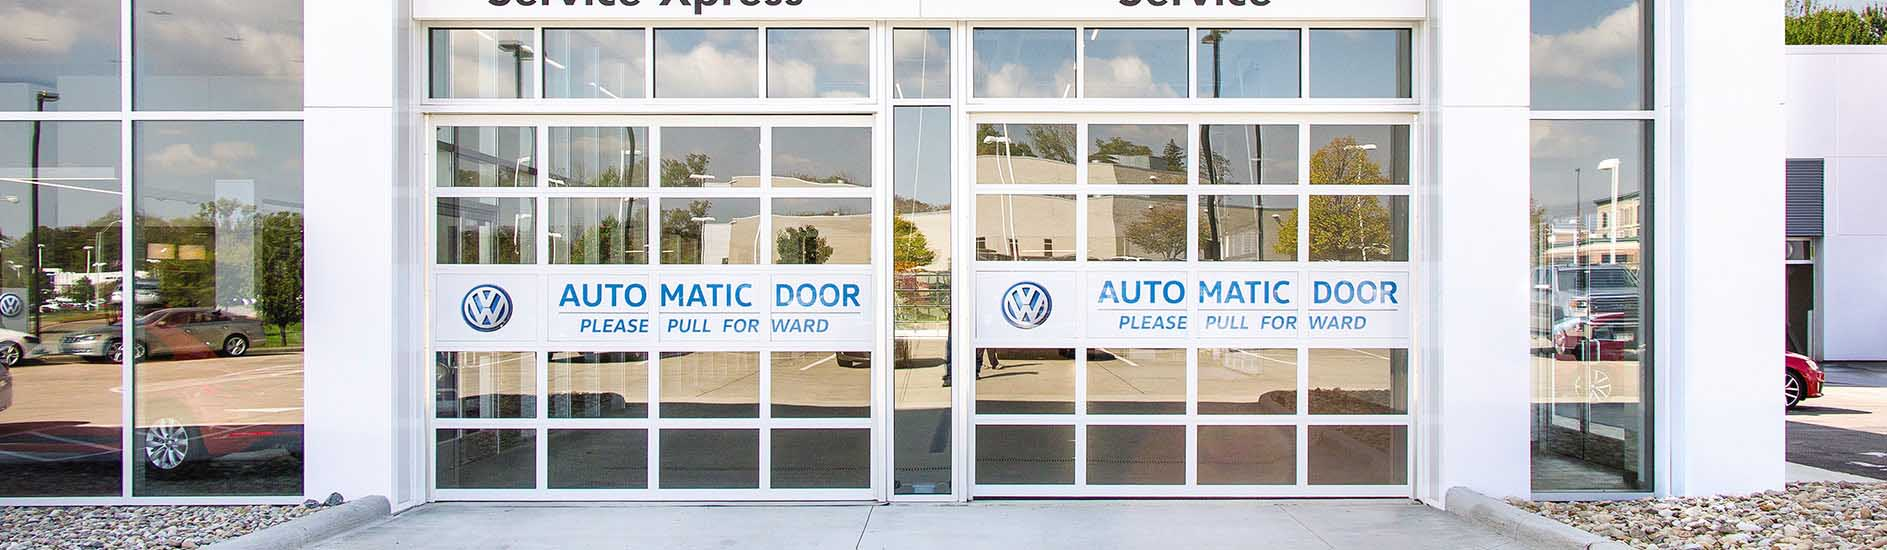 Commercial Aluminum Doors